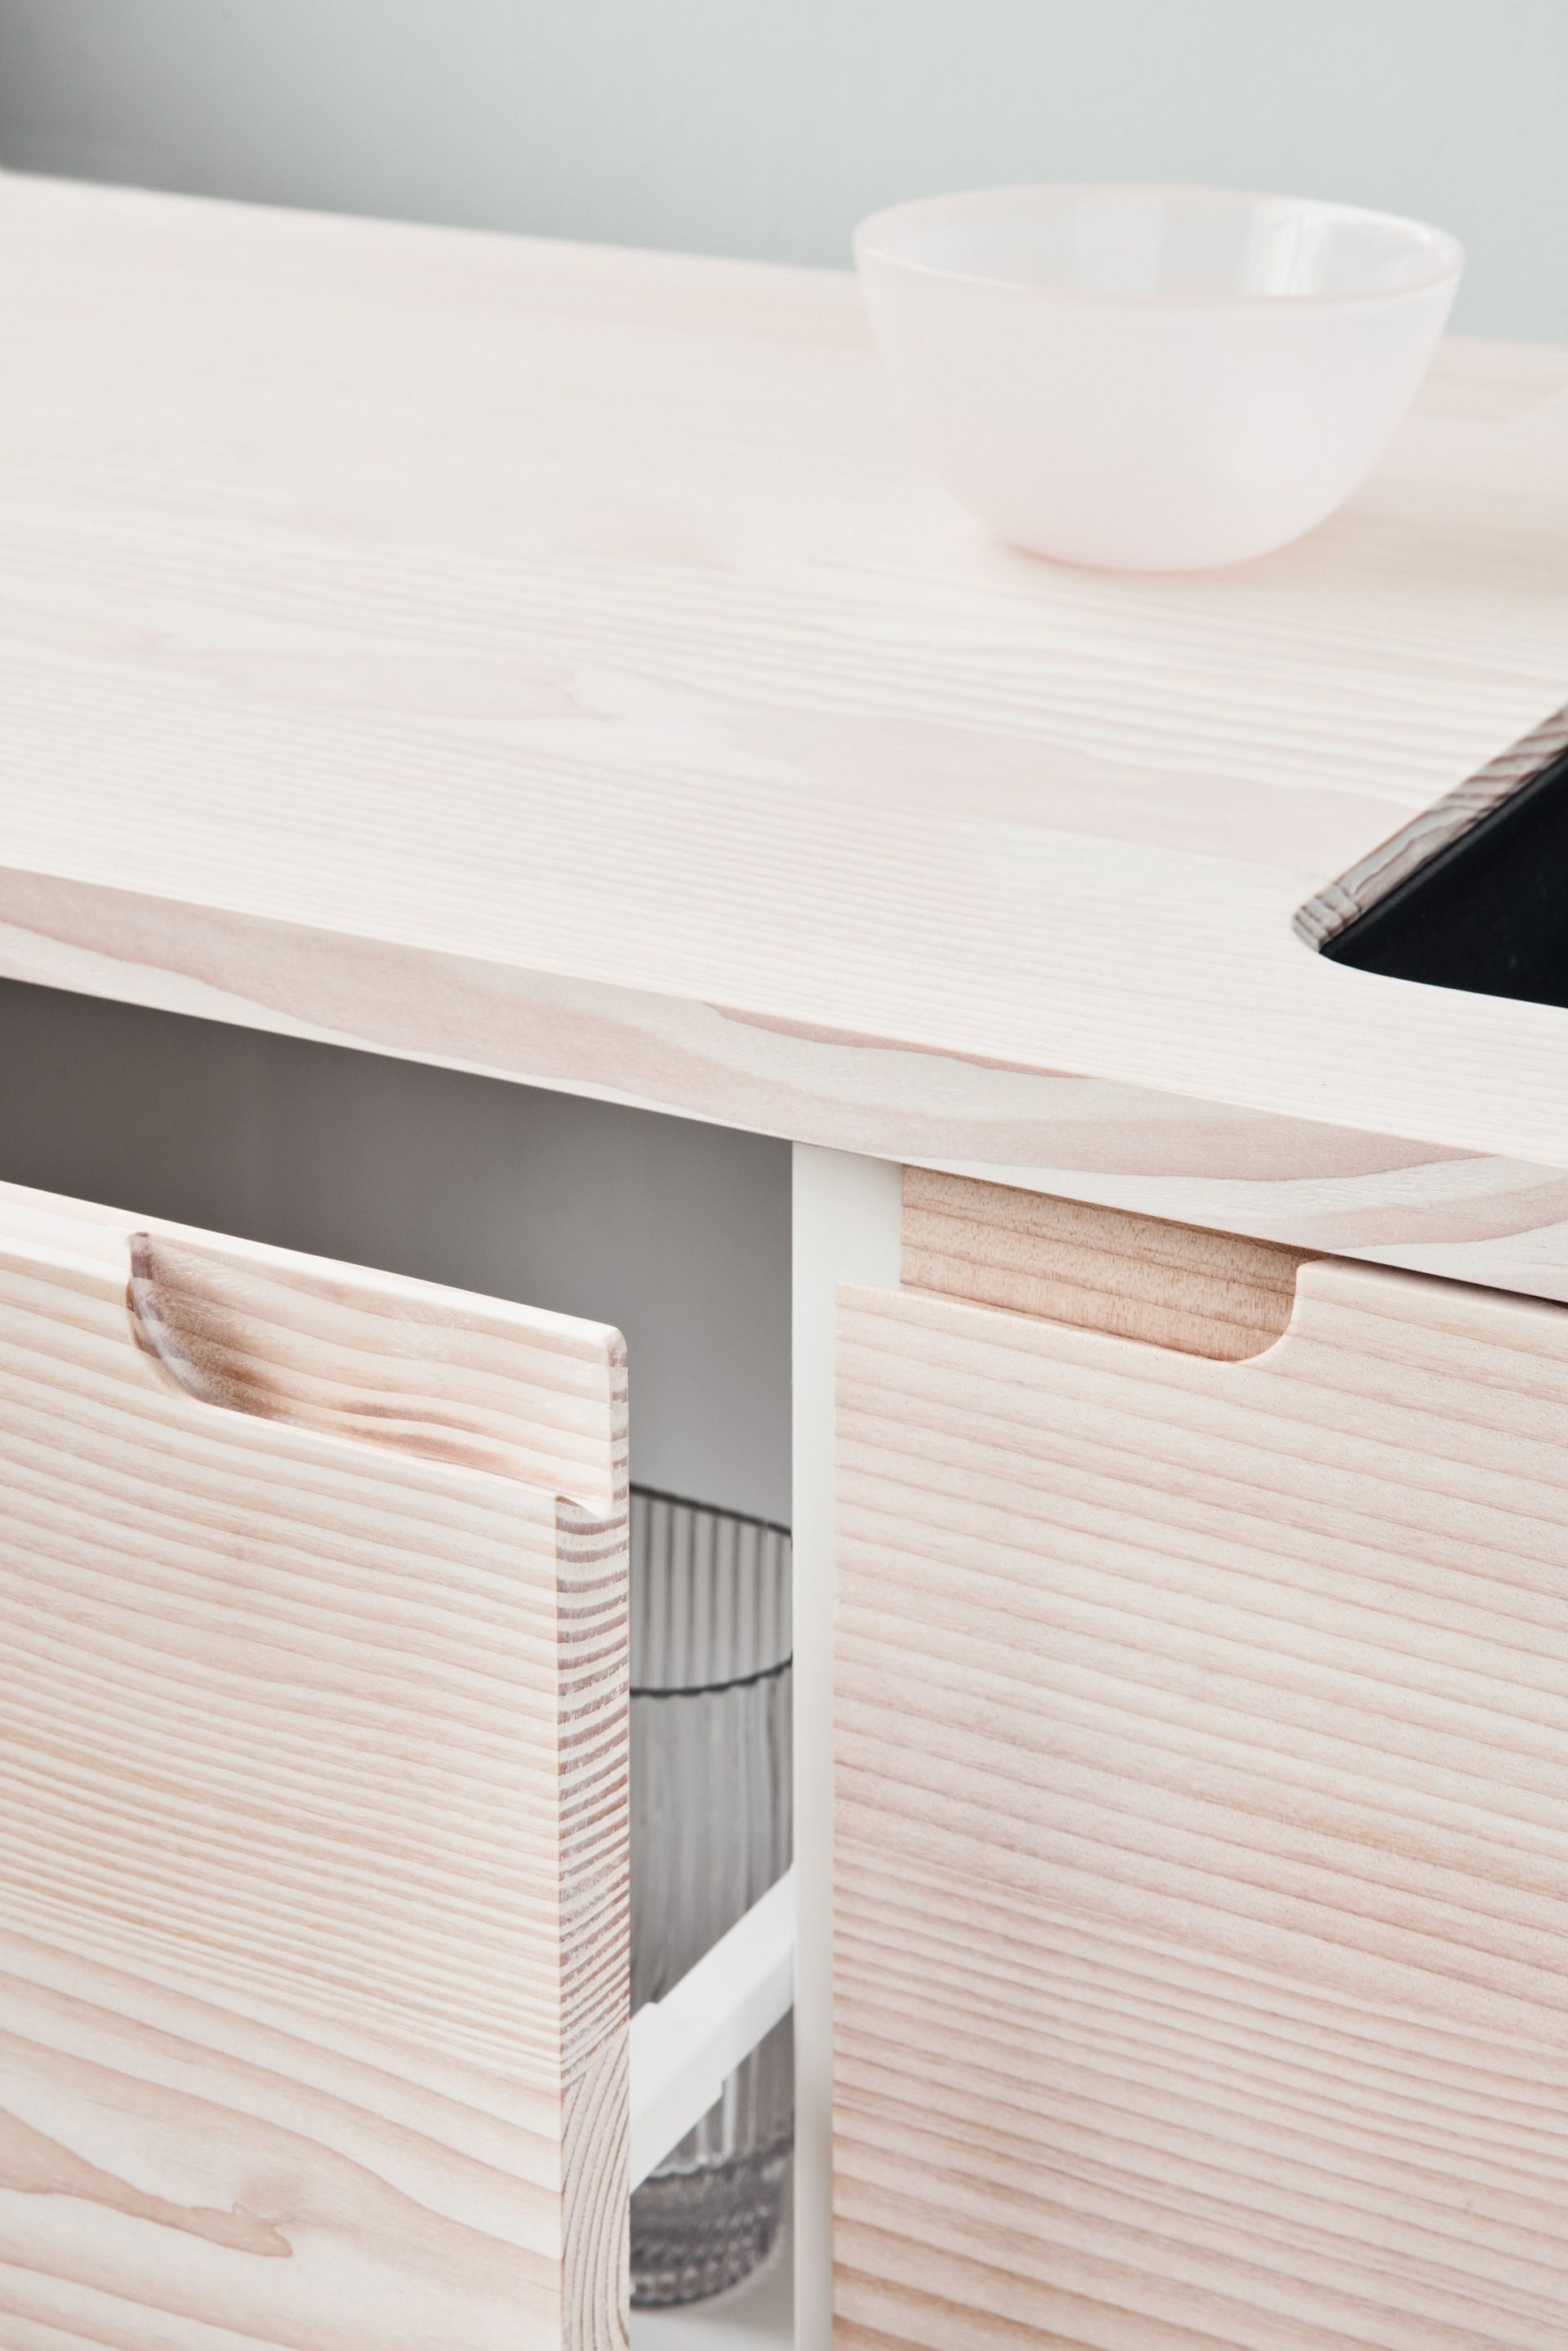 Reform S Ikea Kitchen By Lendager Group A Minimalistic Design In Solid Wood With Respect For The Materials Cuisine Moderne Deco Maison Interieur Idees Cuisine